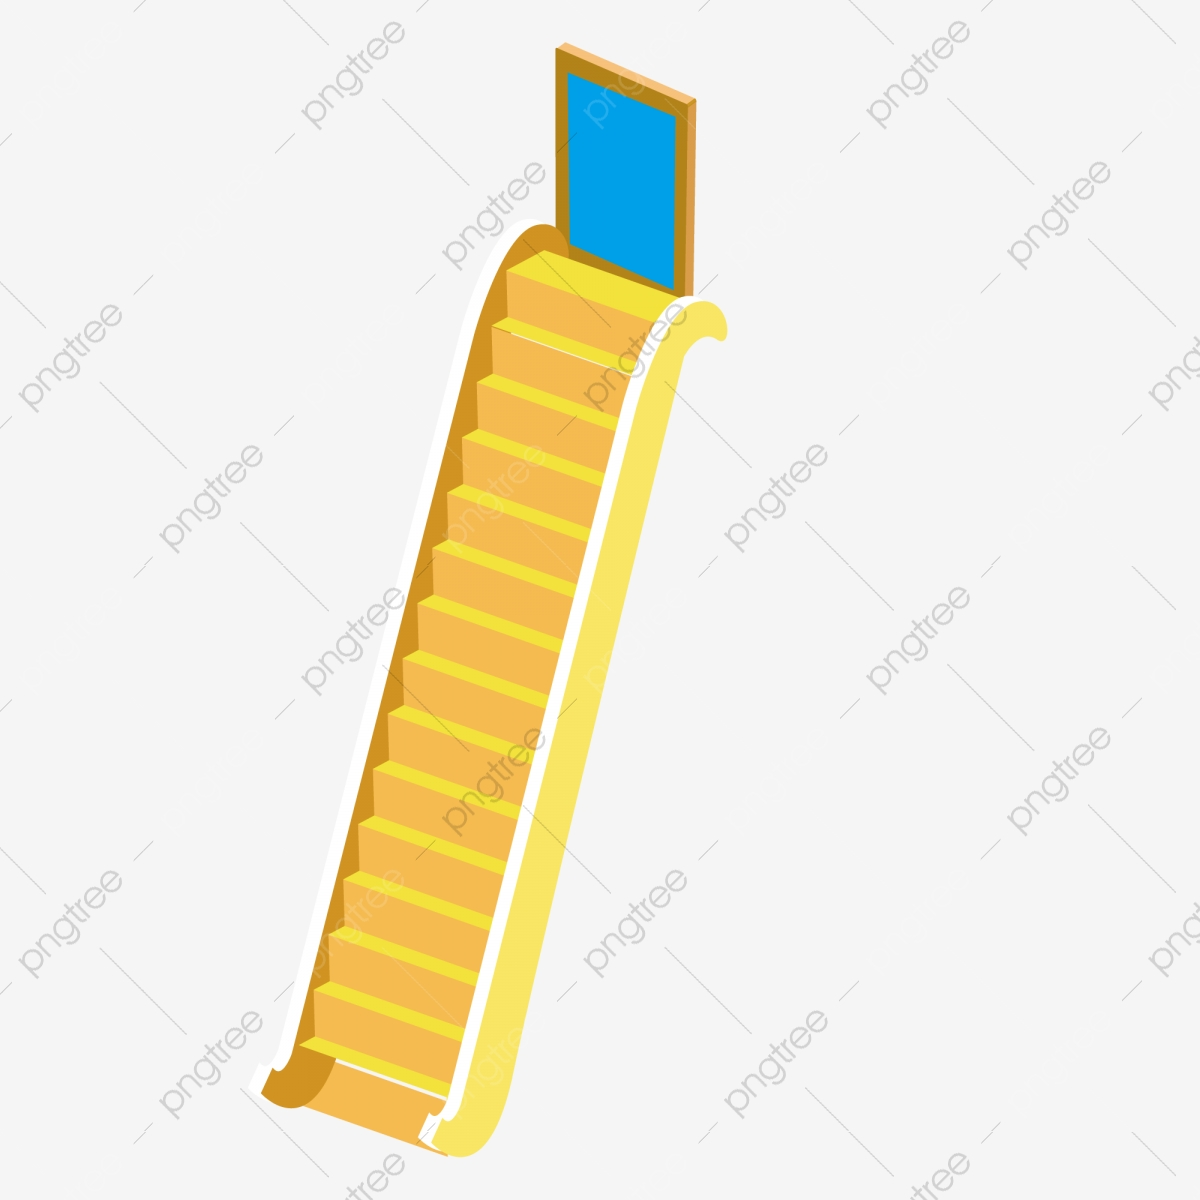 Stairway To Heaven Cliparts, Stock Vector And Royalty Free Stairway To  Heaven Illustrations